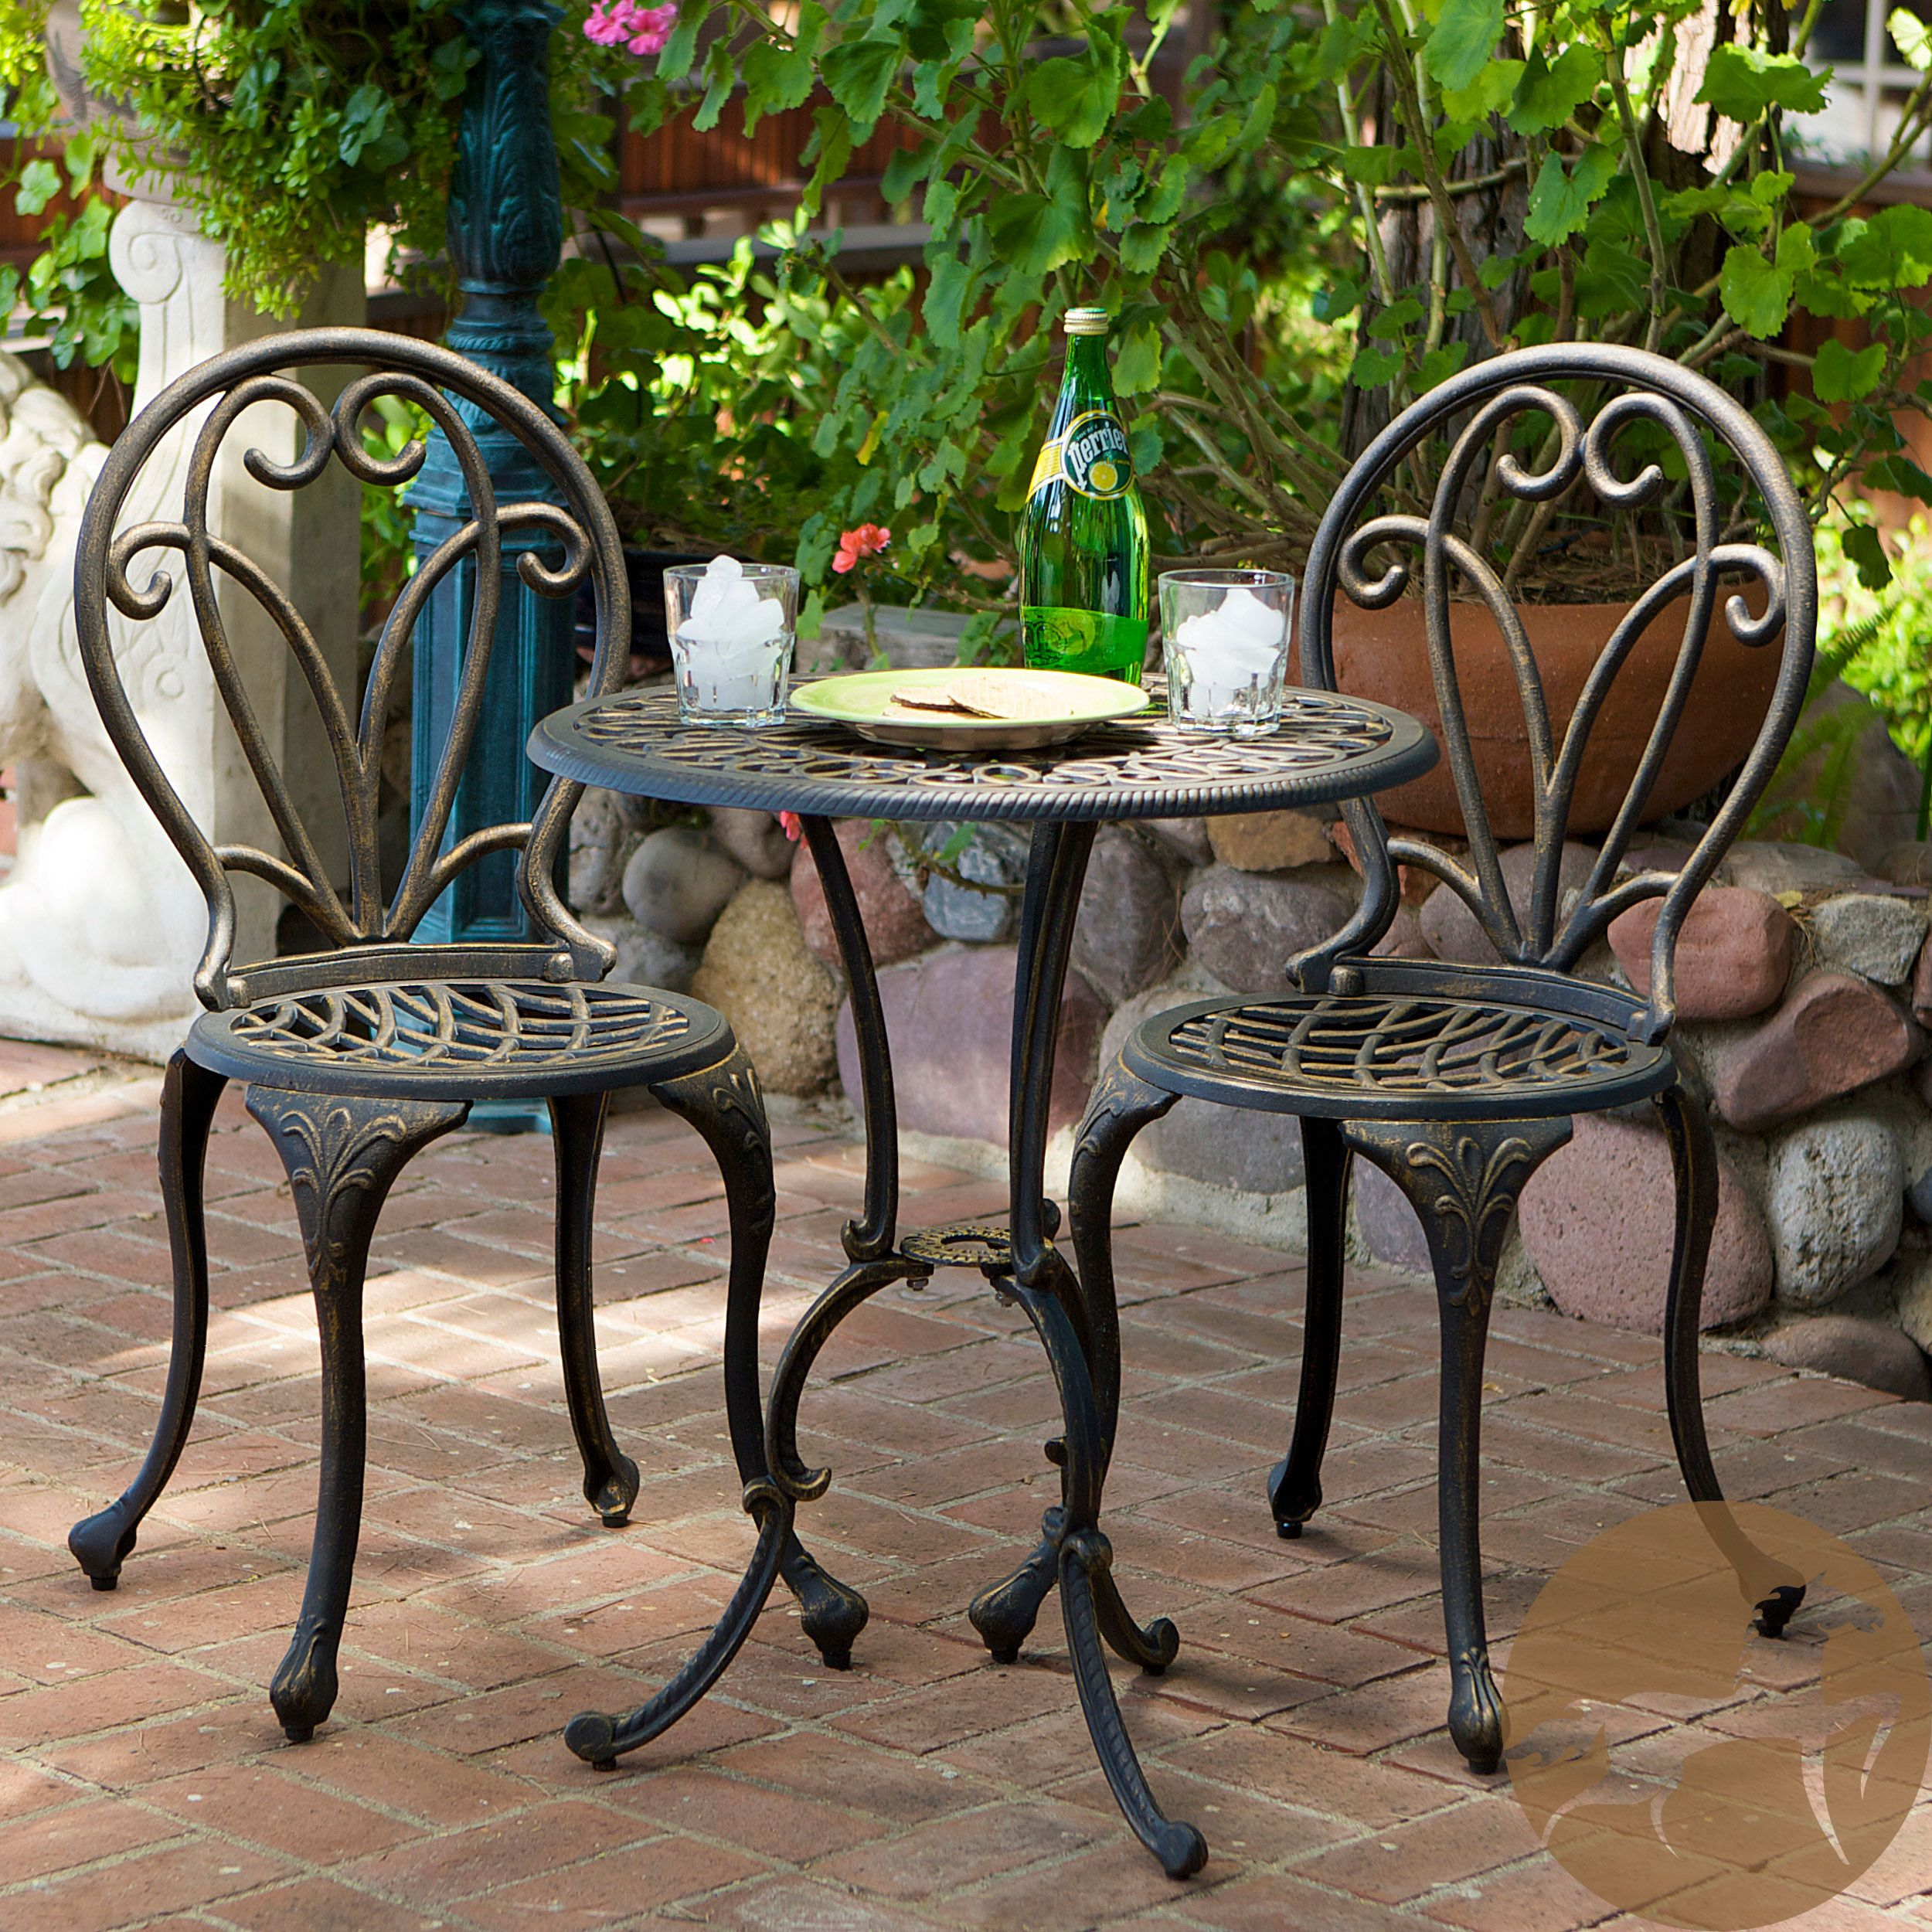 Parisian Cafe Table And Chairs Small Lounge This French Style Outdoor Bistro Set Will Lend Classy